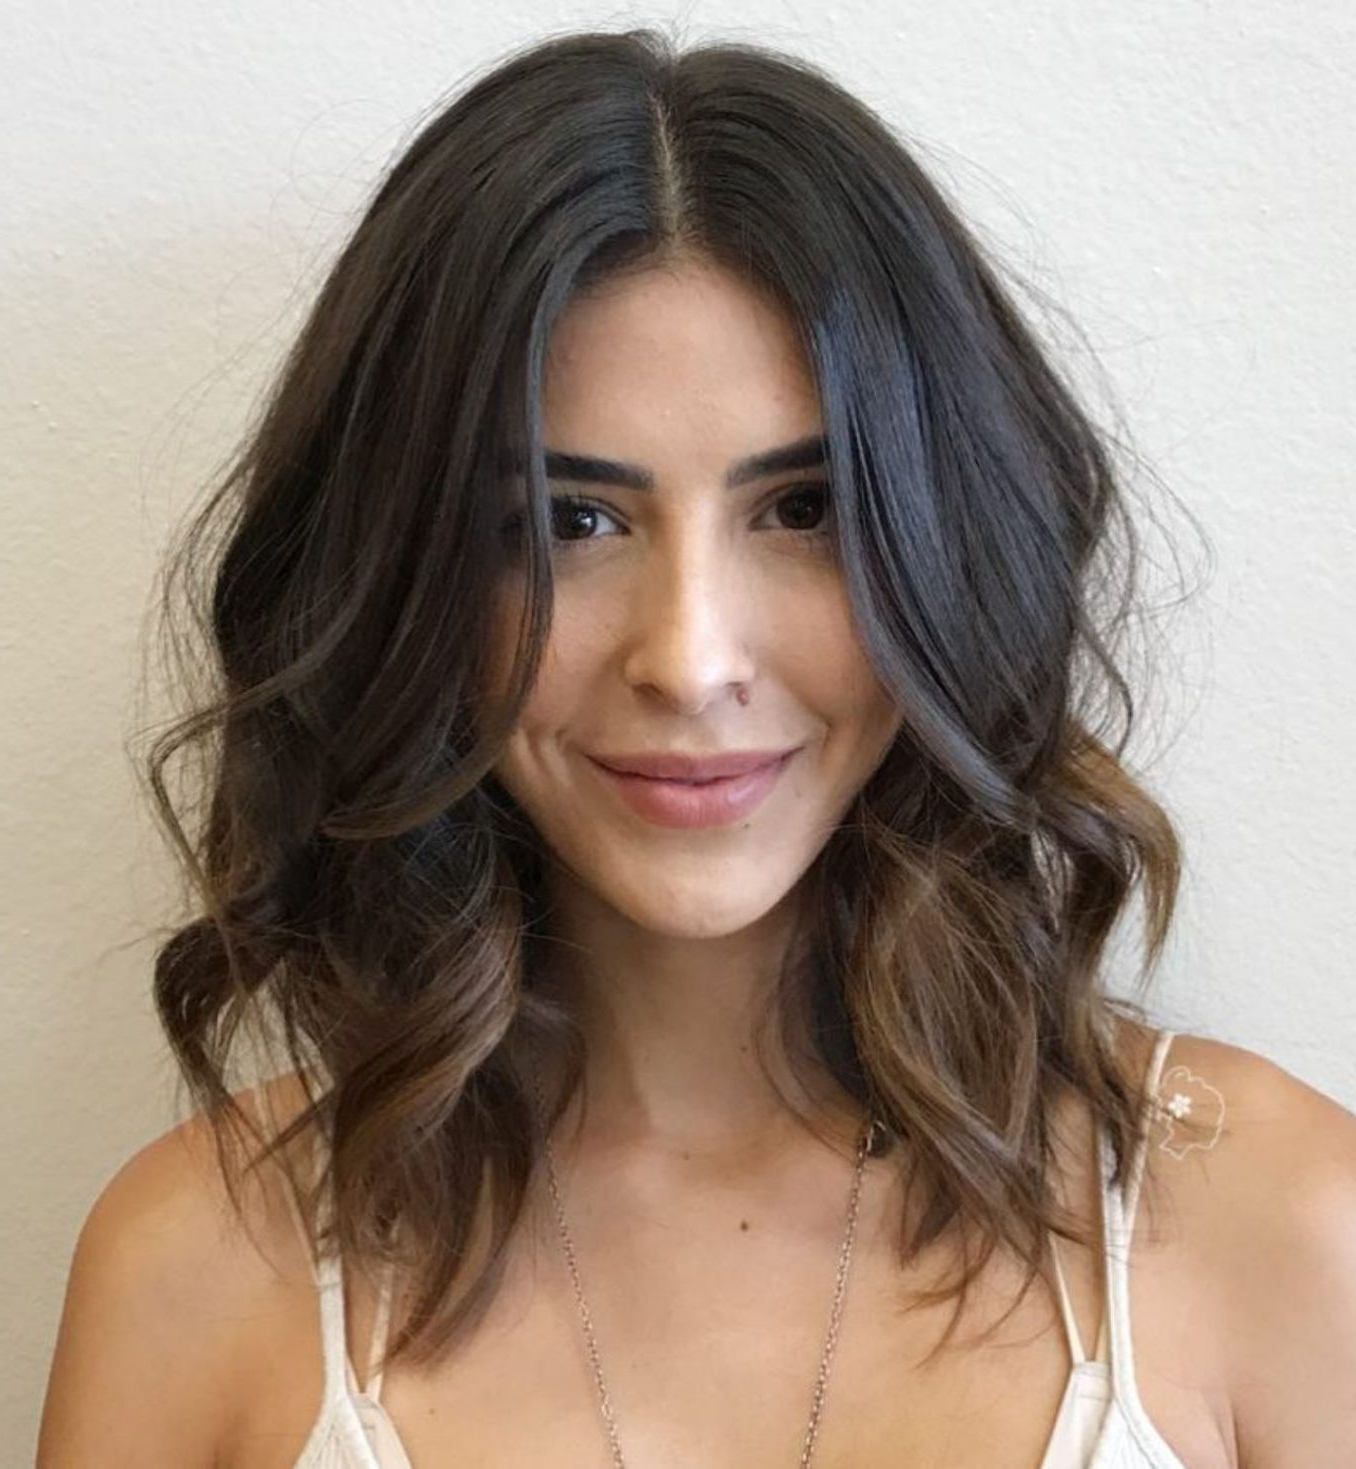 Best And Newest Long Wavy Hairstyles With A Messy Touch Throughout 50 Gorgeous Wavy Bob Hairstyles With An Extra Touch Of Femininity In (View 2 of 20)